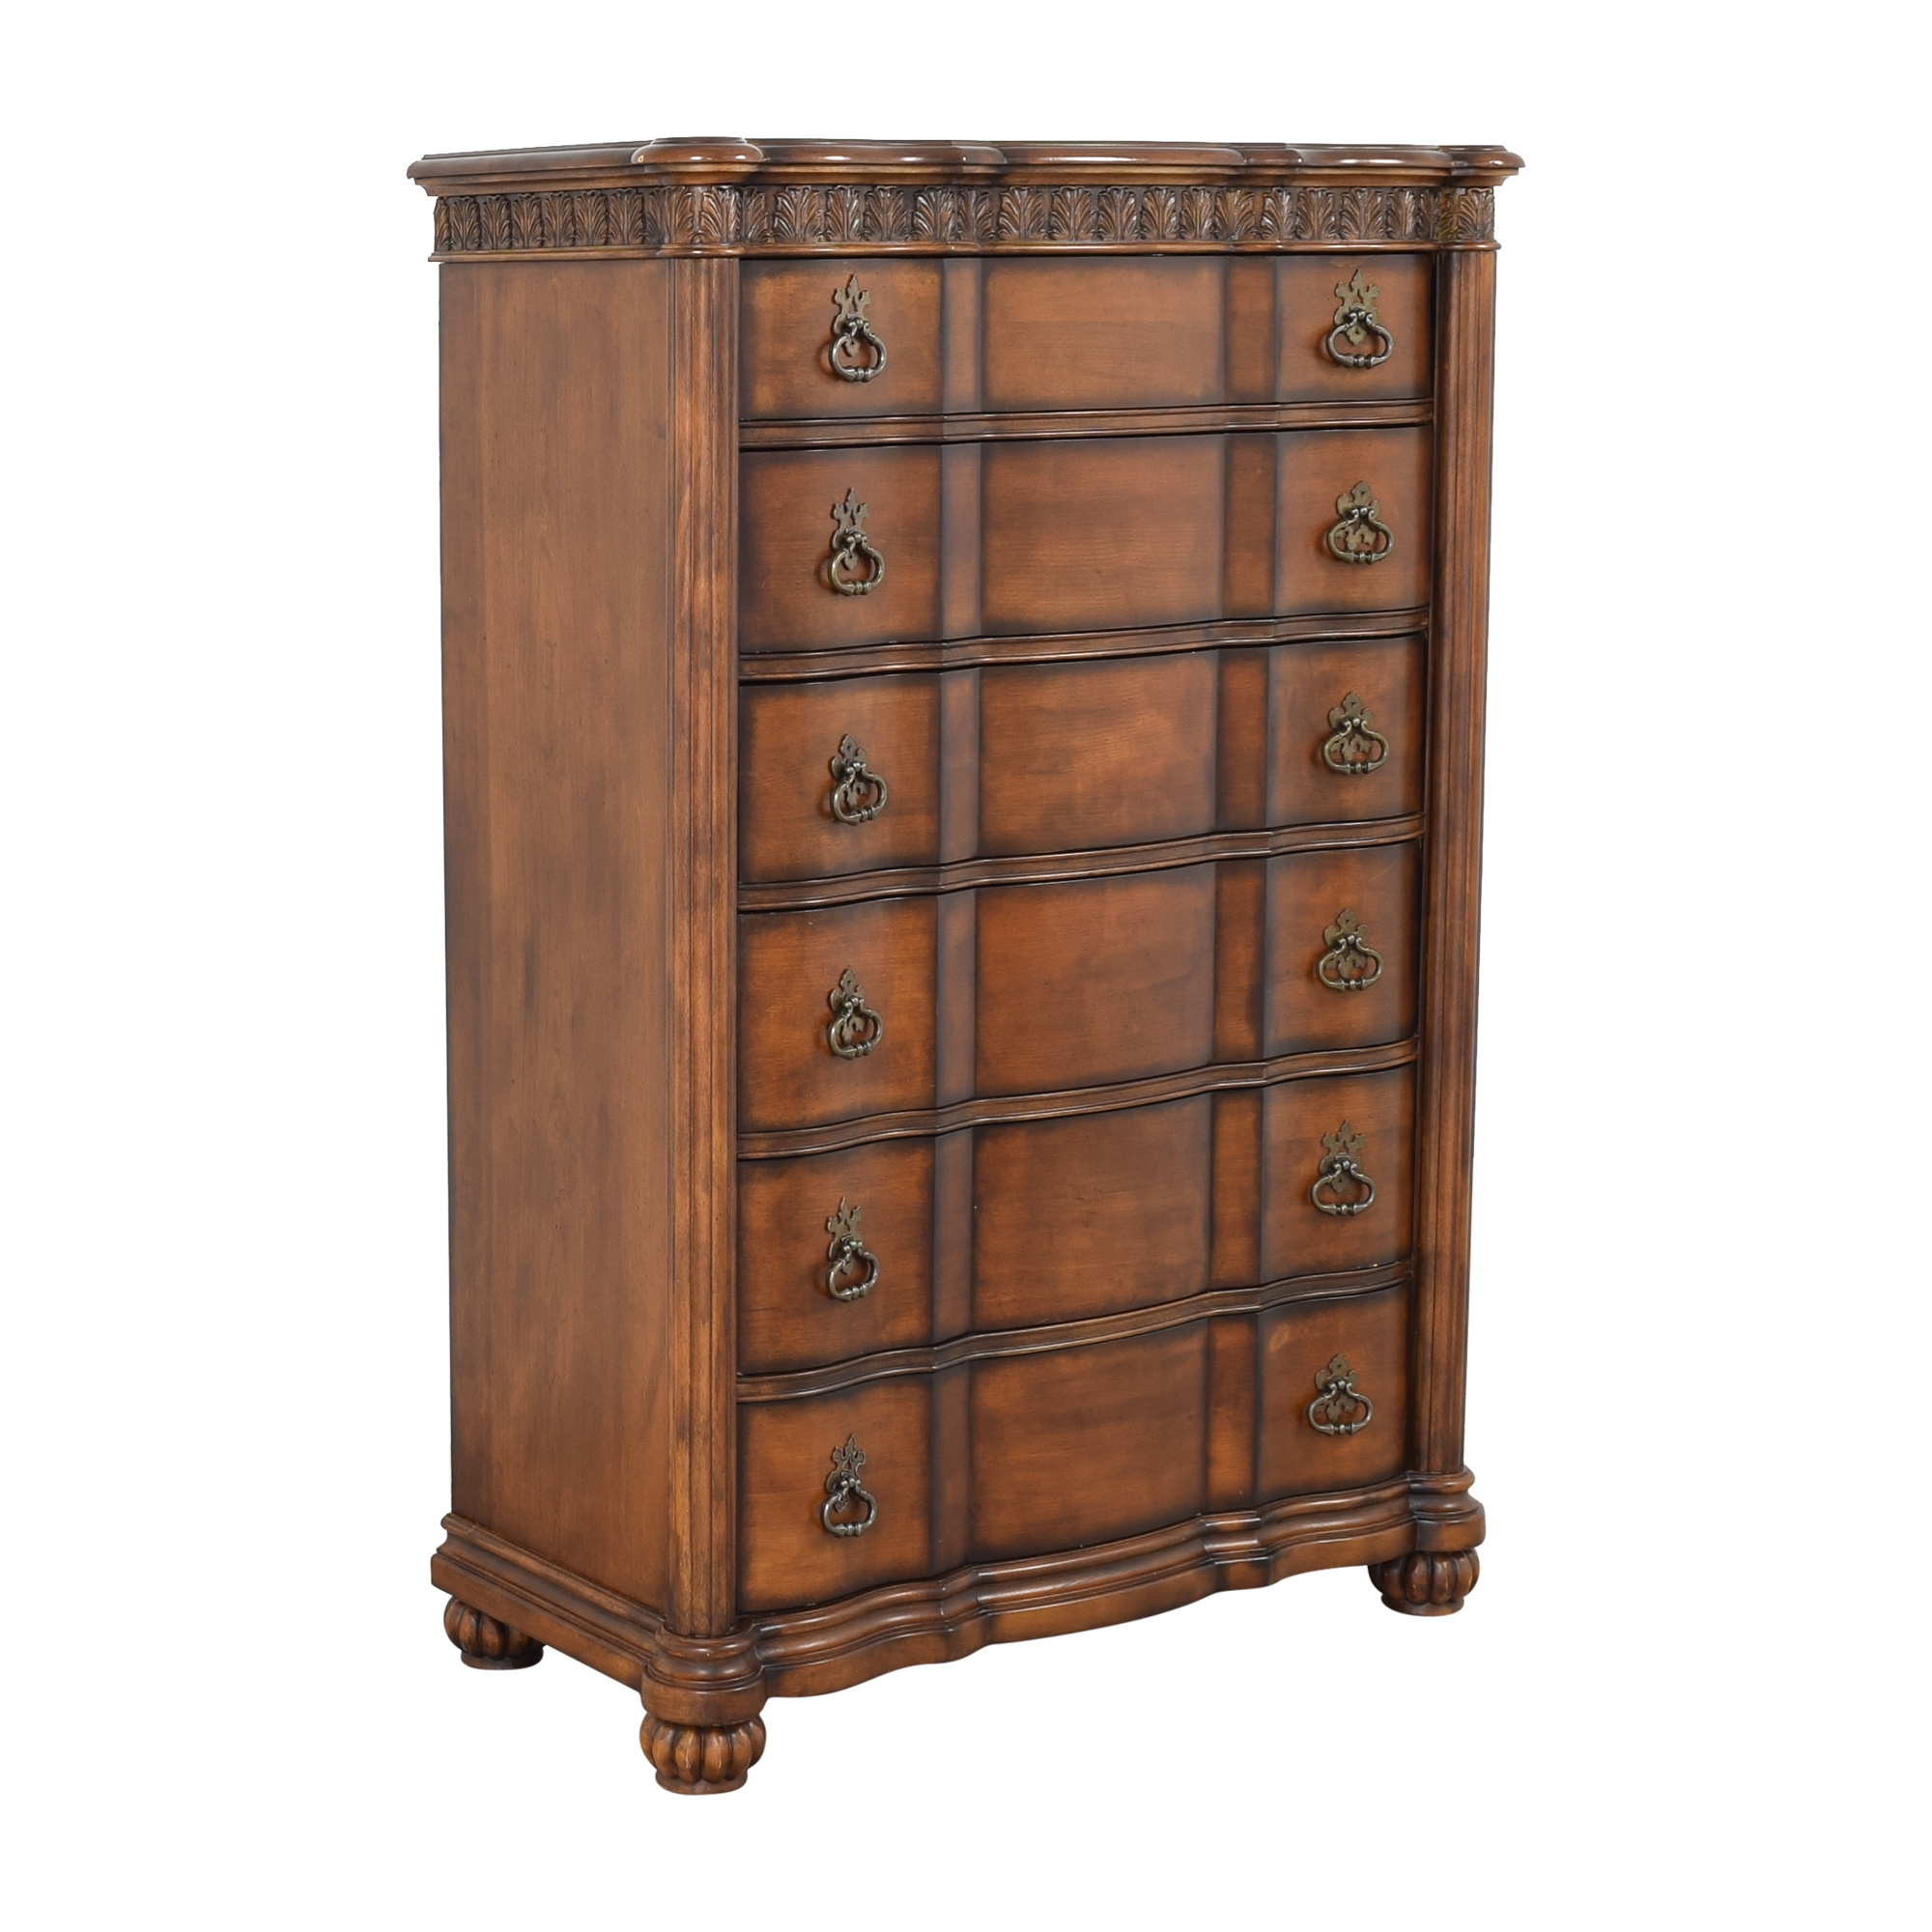 Pulaski Furniture Pulaski Six Drawer Grand Ornate Dresser on sale